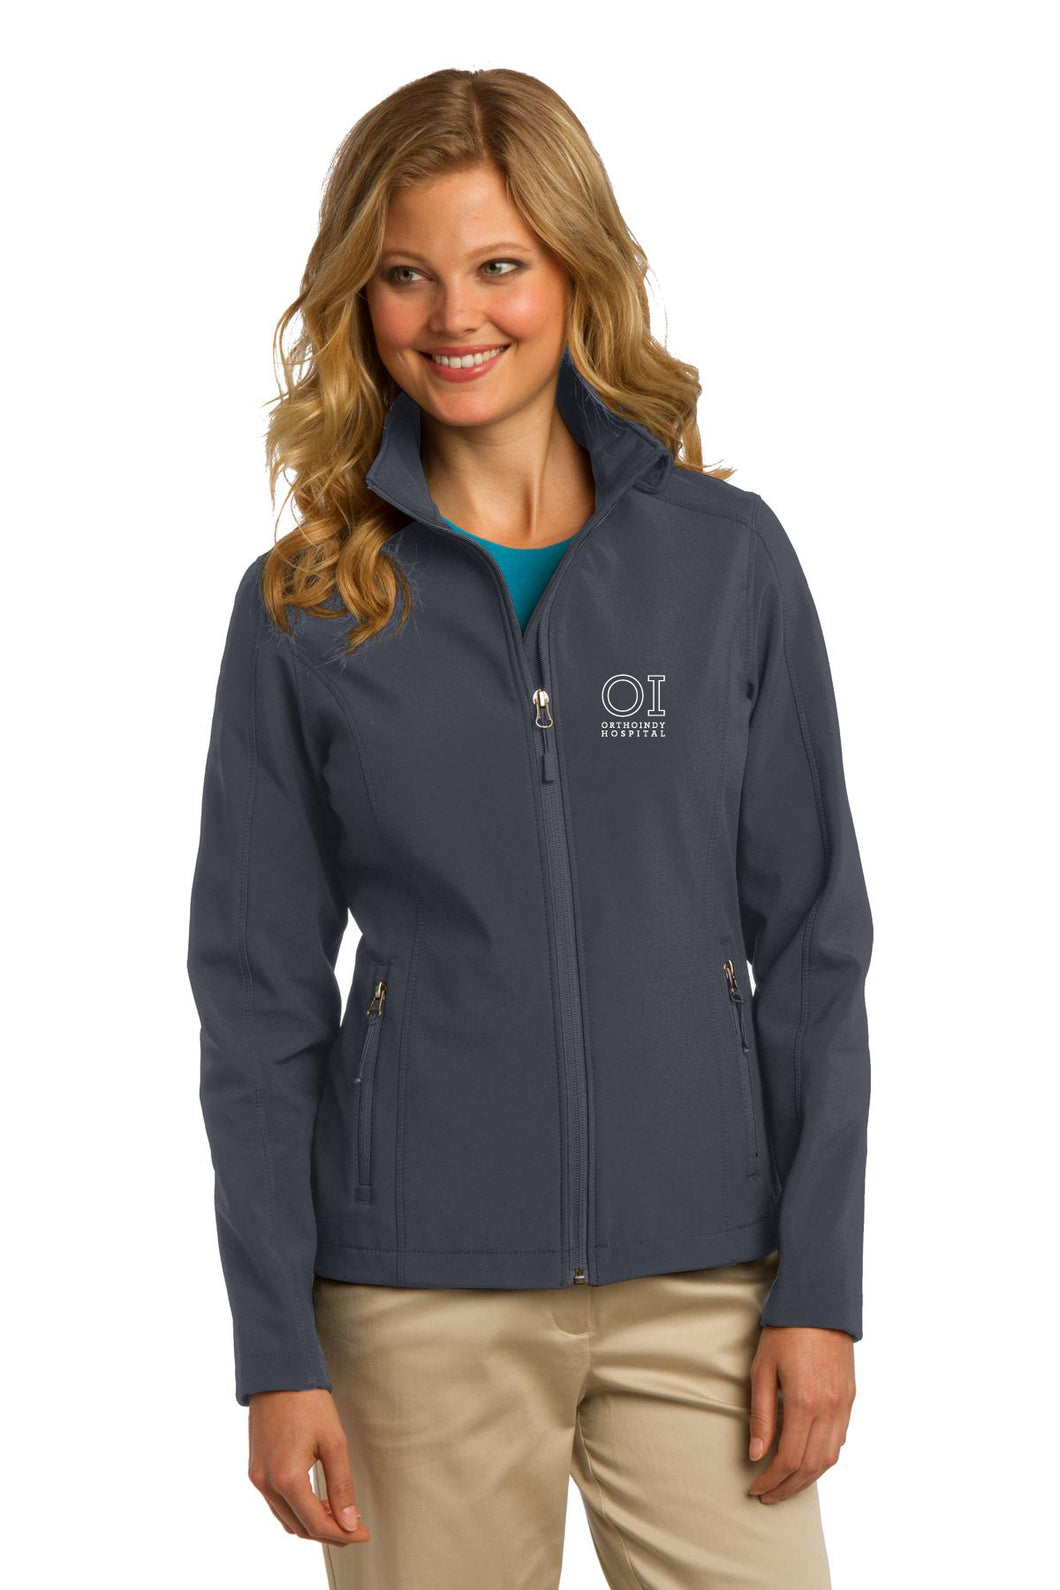 Port Authority® - Ladies Core Soft Shell Jacket - OrthoIndy